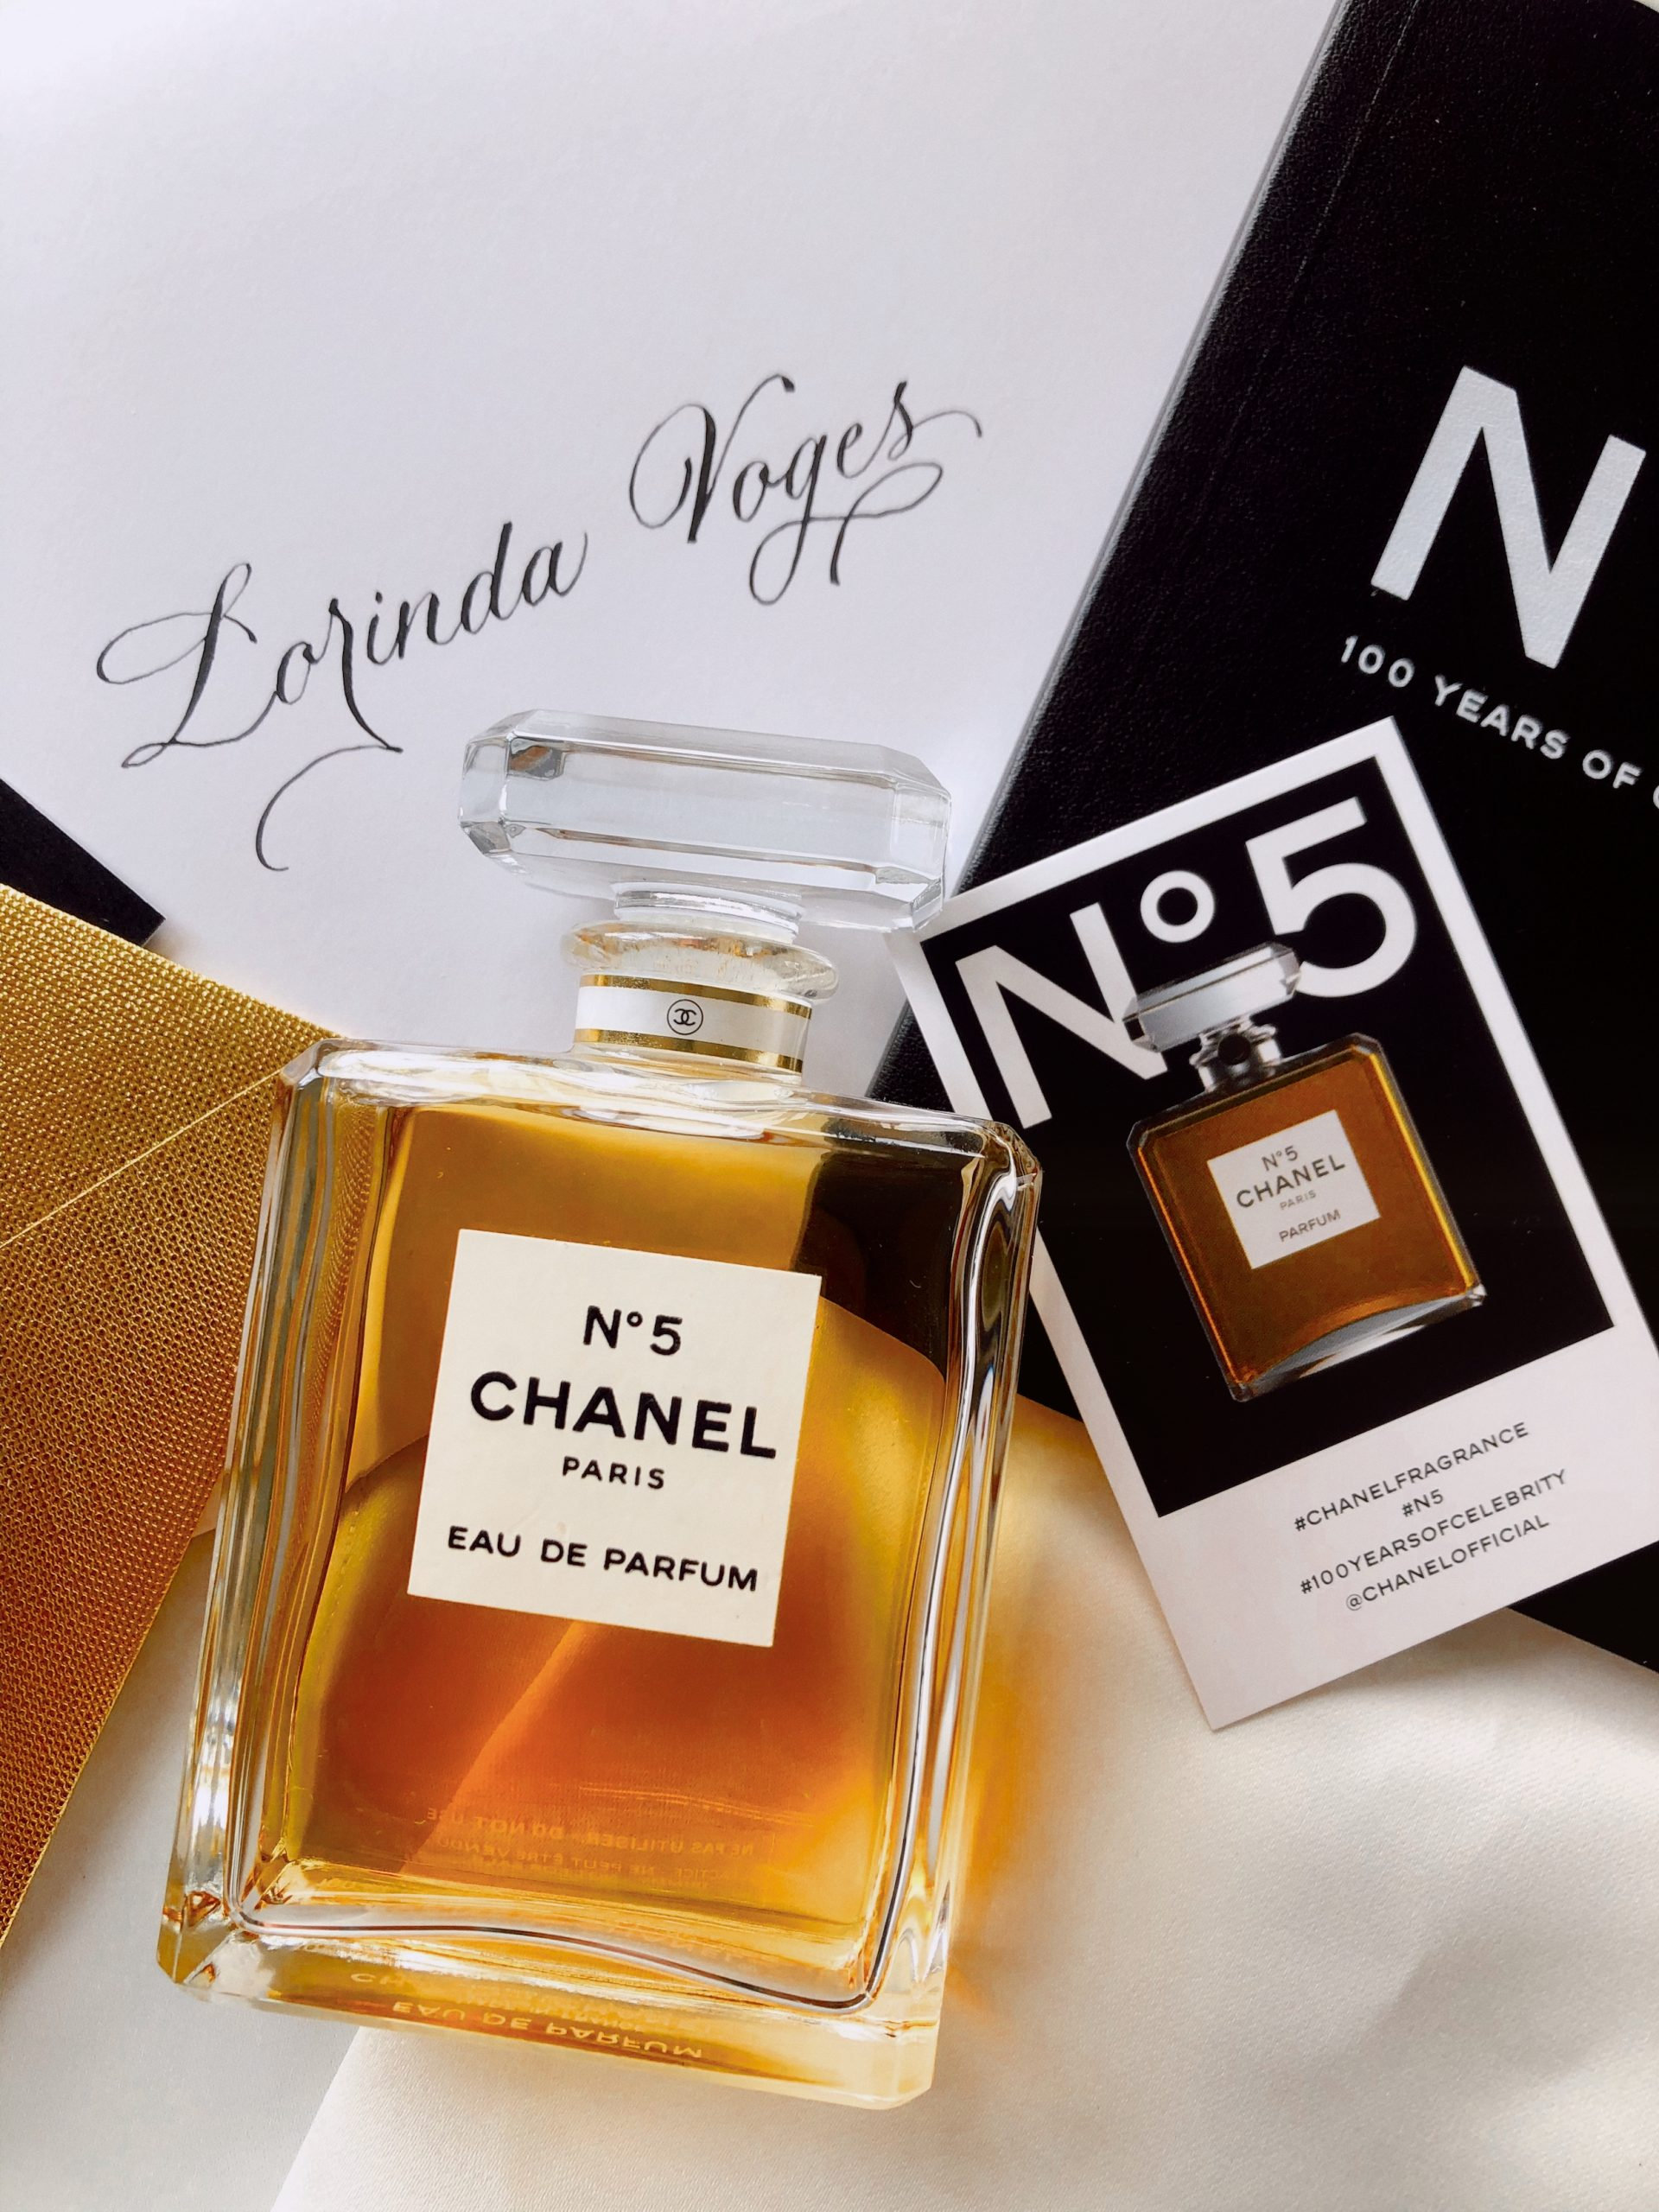 100 years of CHANEL N°5